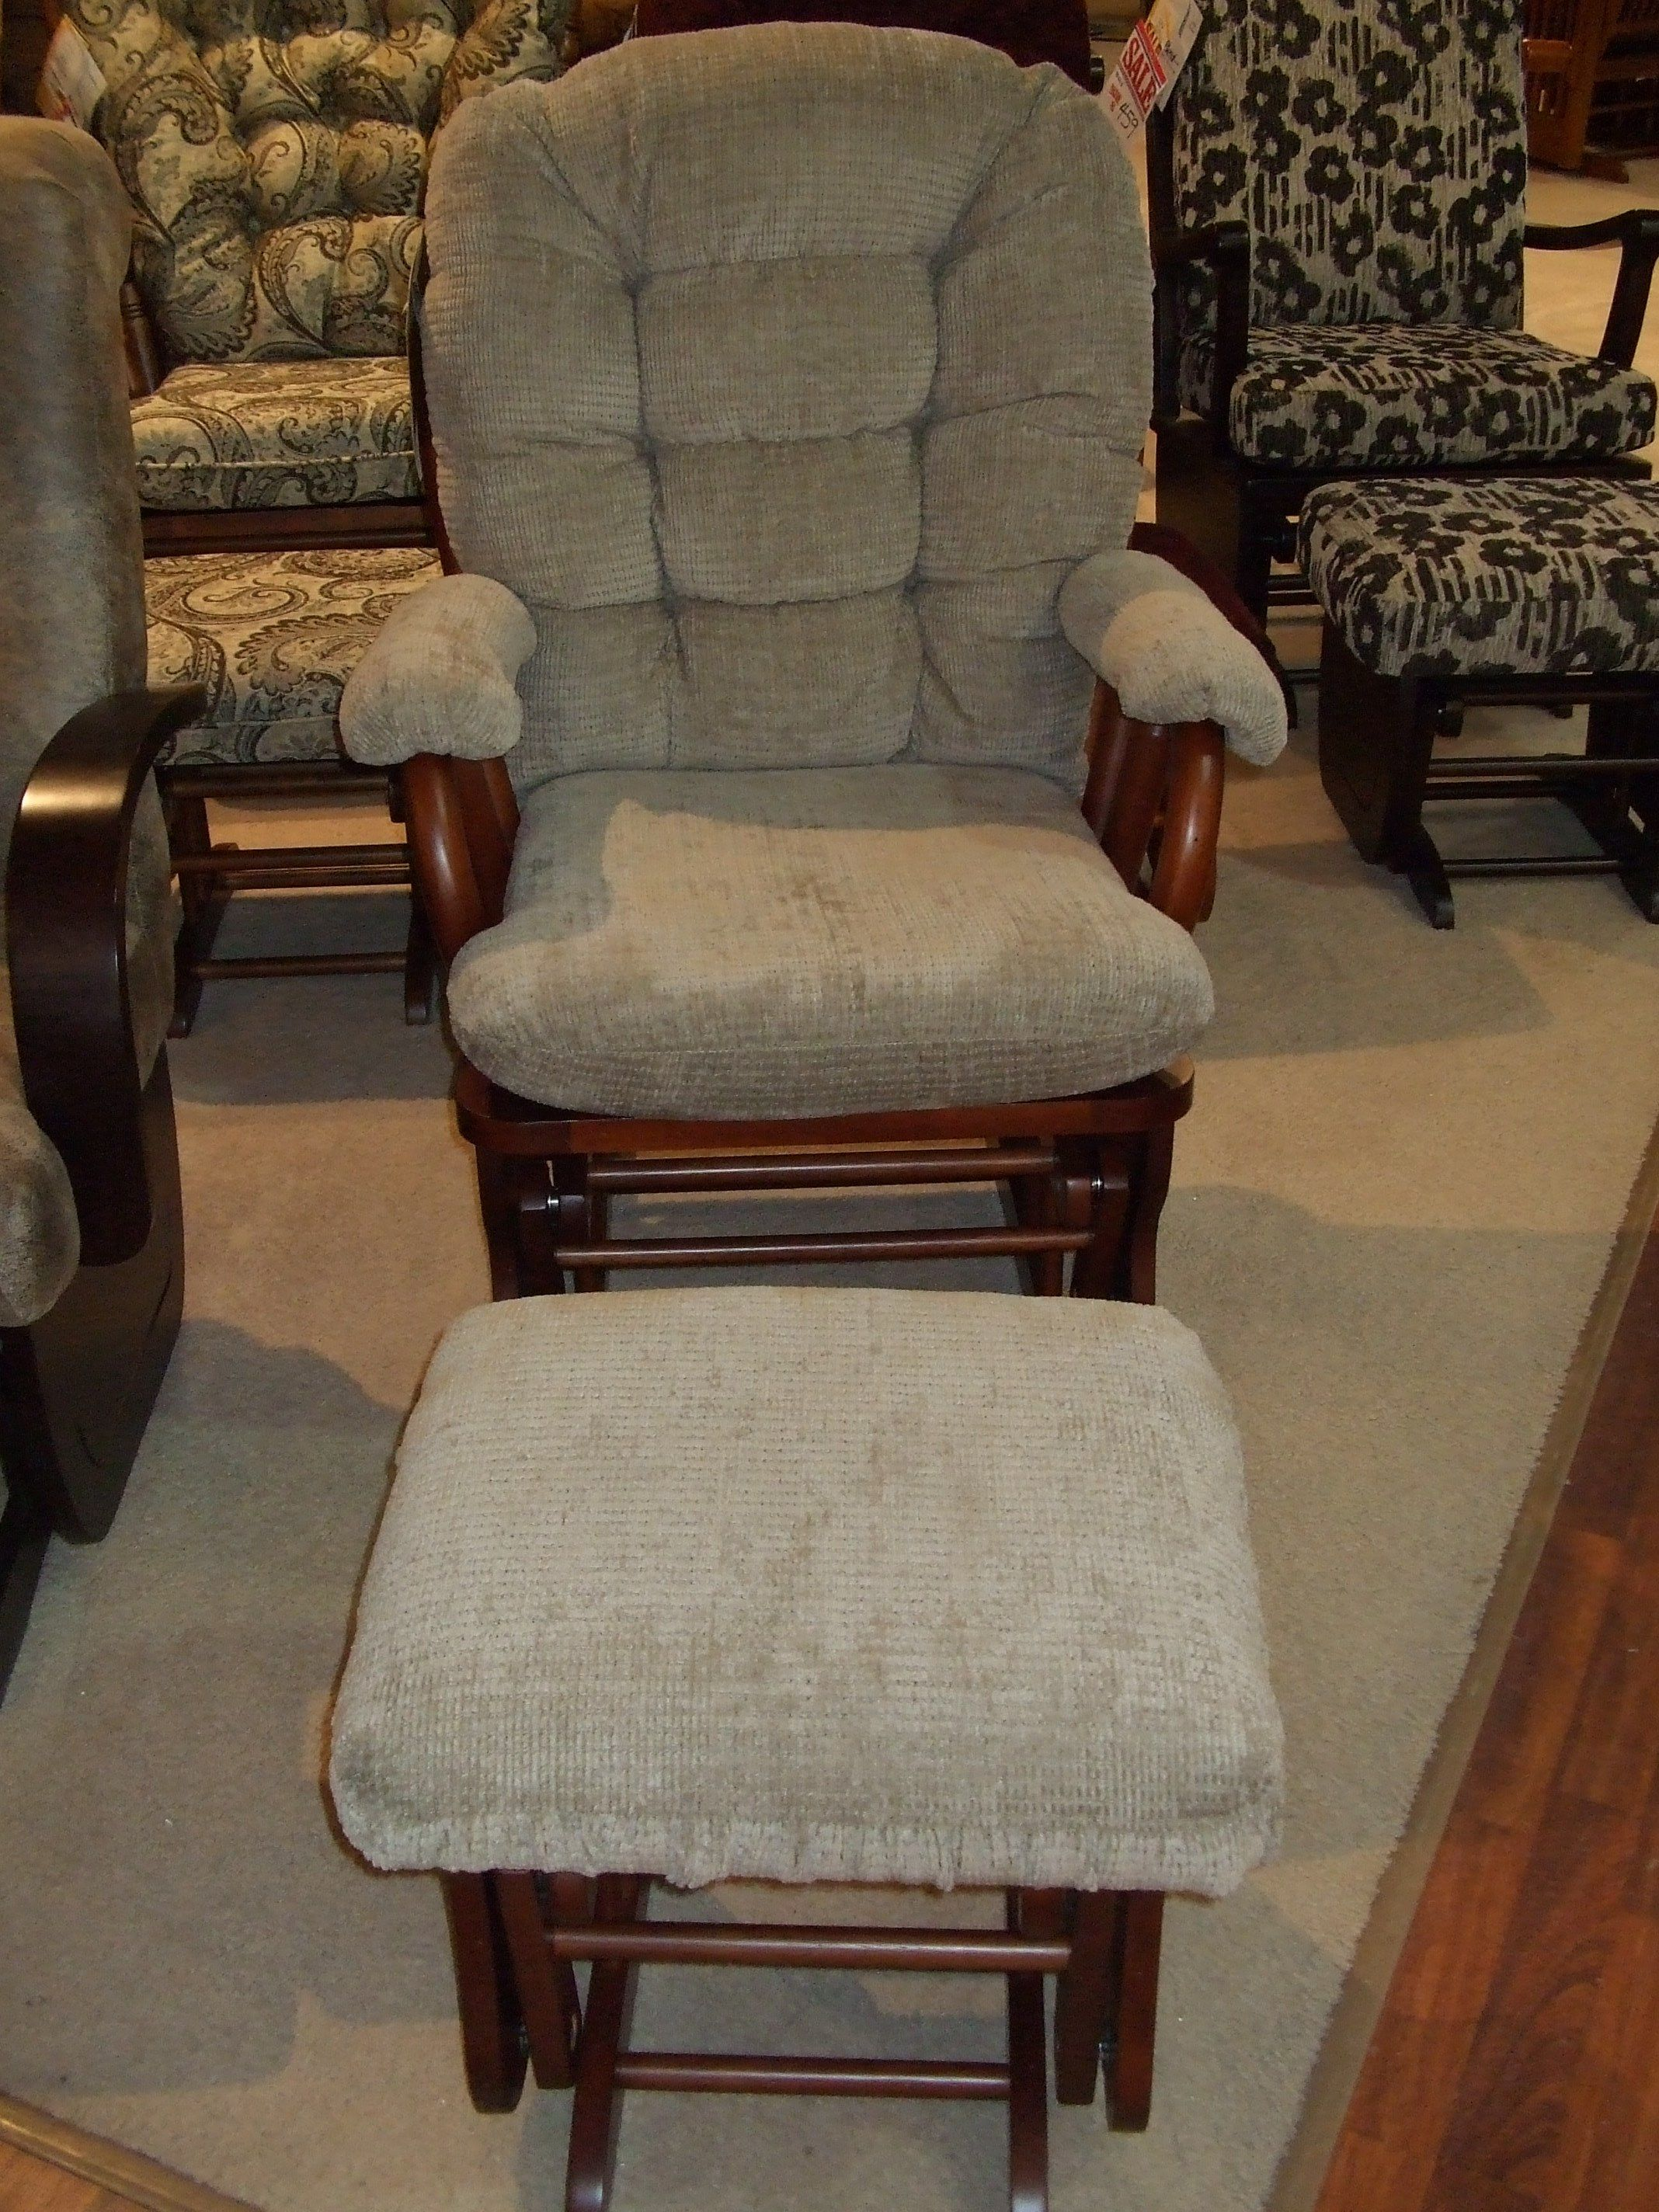 Lansing Furniture: 877 538 4678 Best Home Furnishings Glider And Ottoman Co  Pak